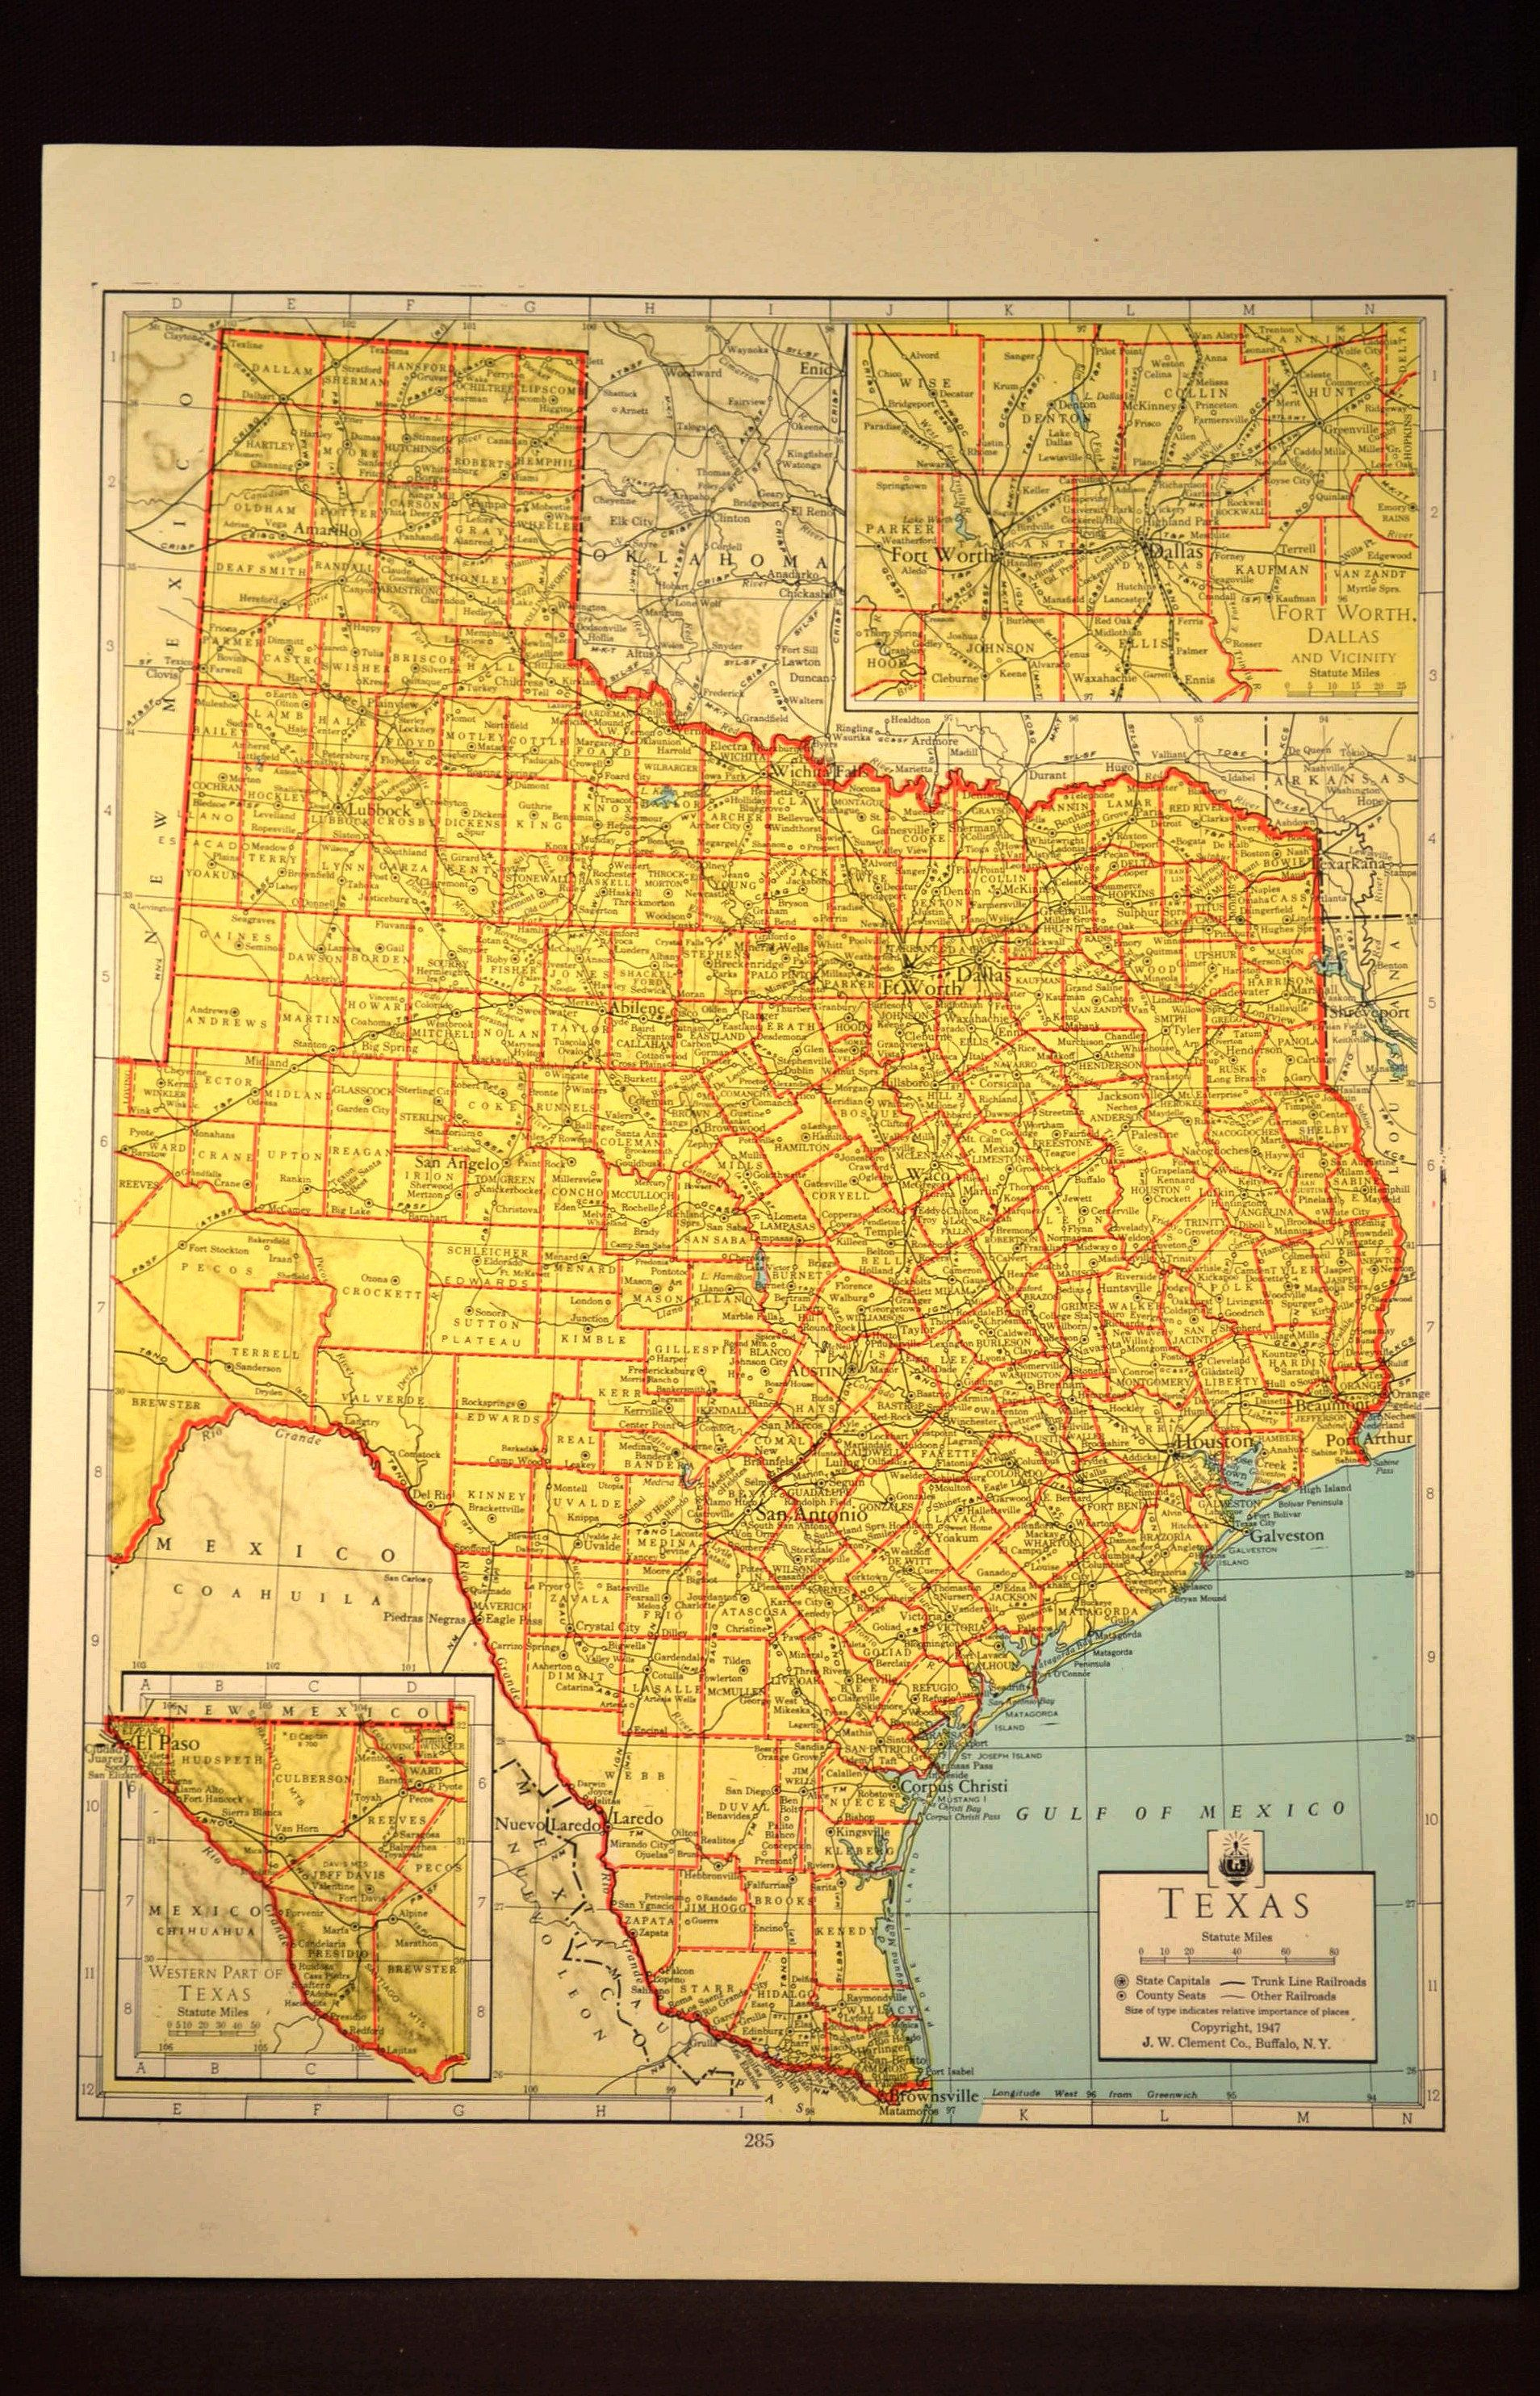 Texas Map Of Texas Wall Art Colored Colorful Yellow Vintage Gift - Texas Map Wall Art